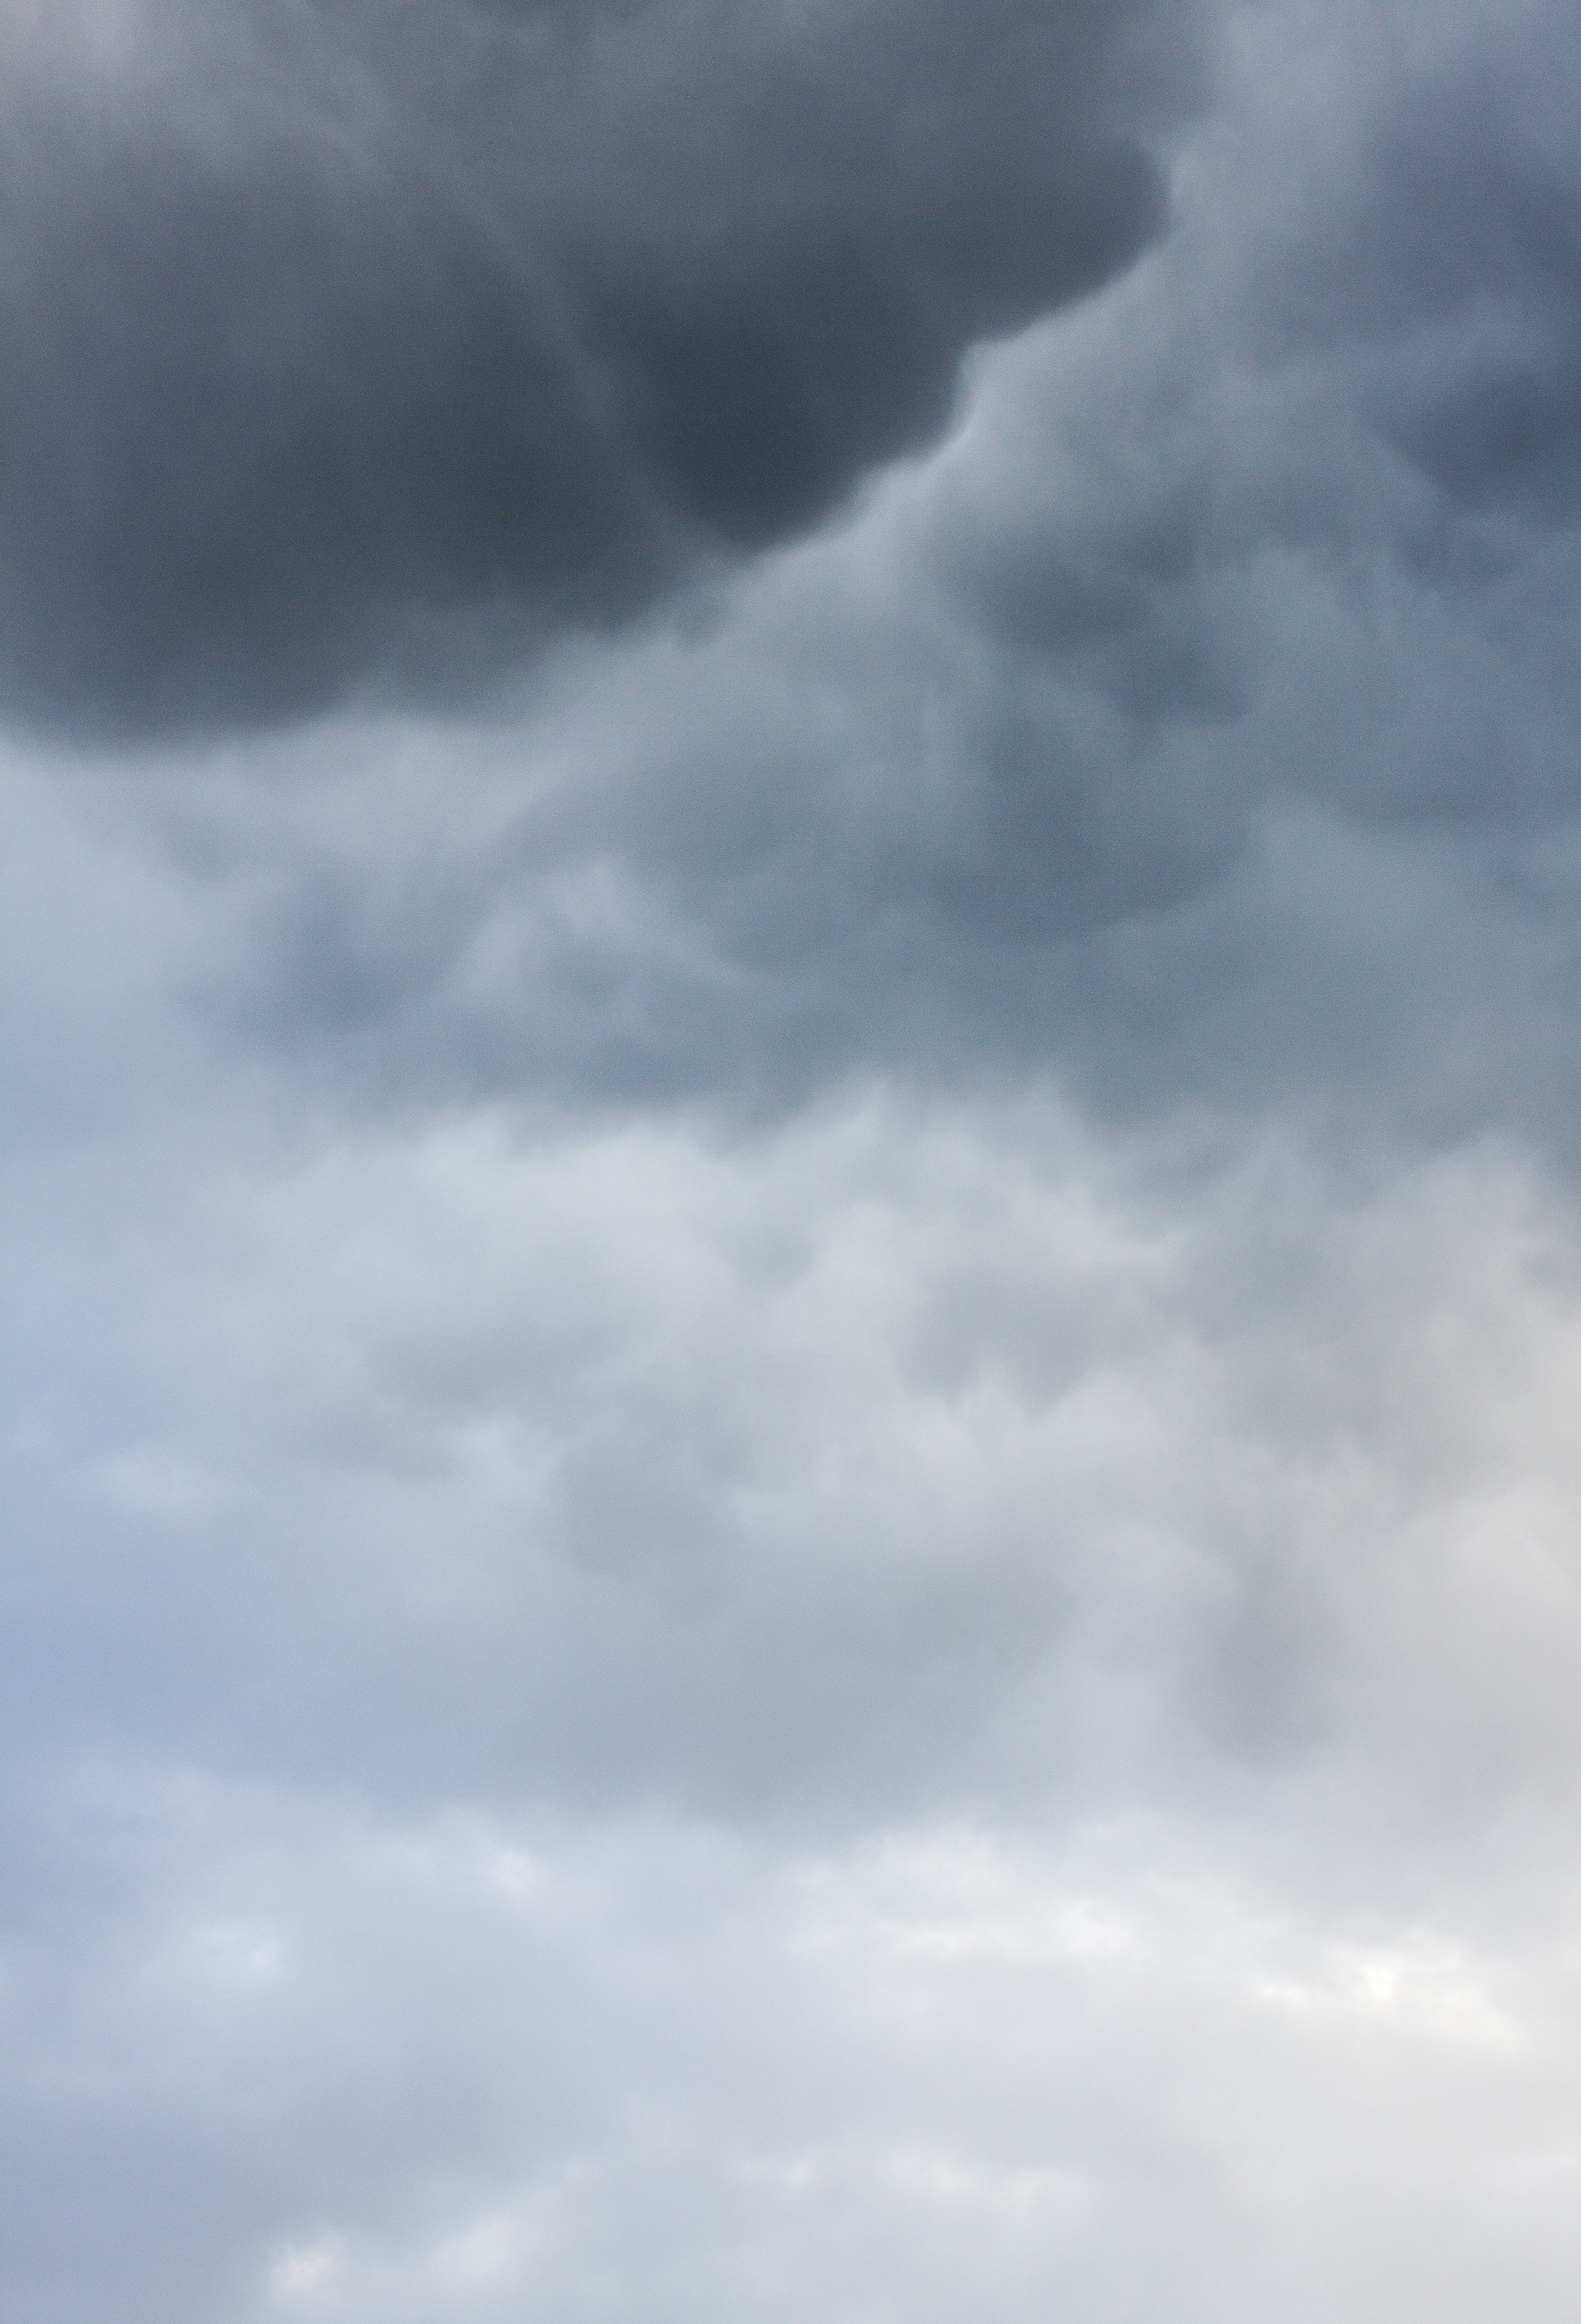 Free stock photo of clouds, weather, rain, wind